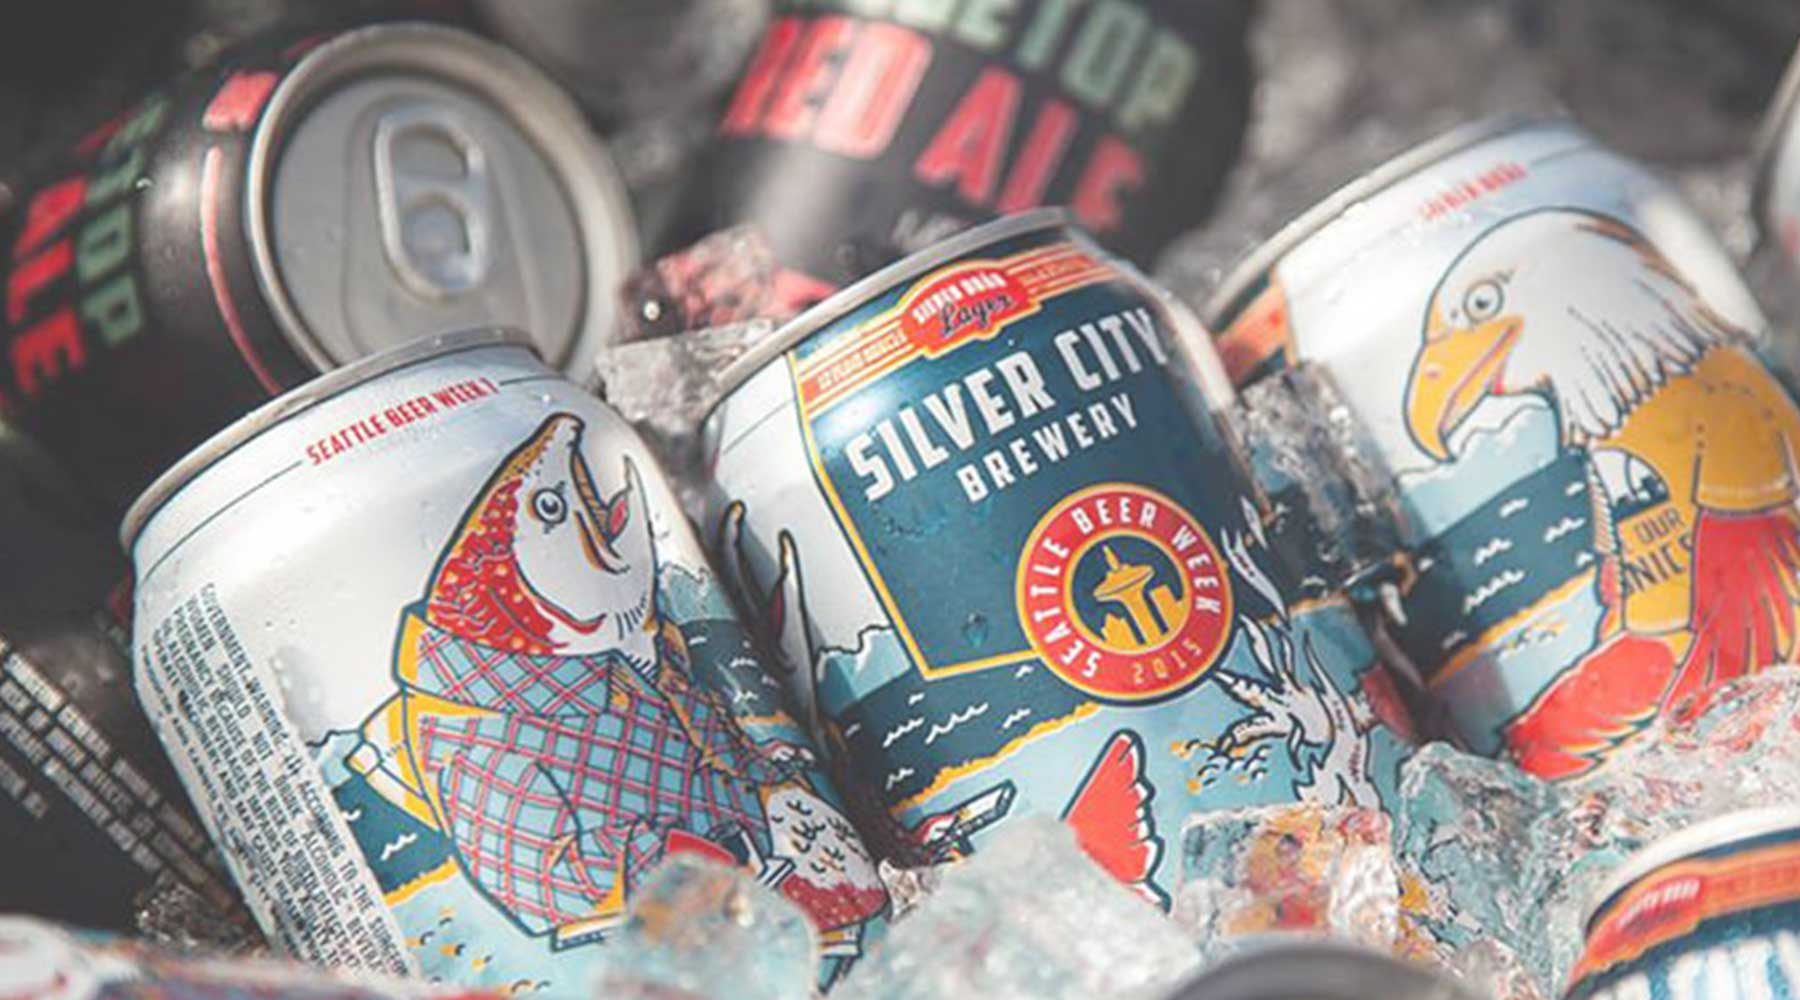 Silver City Brewery | Just Wine